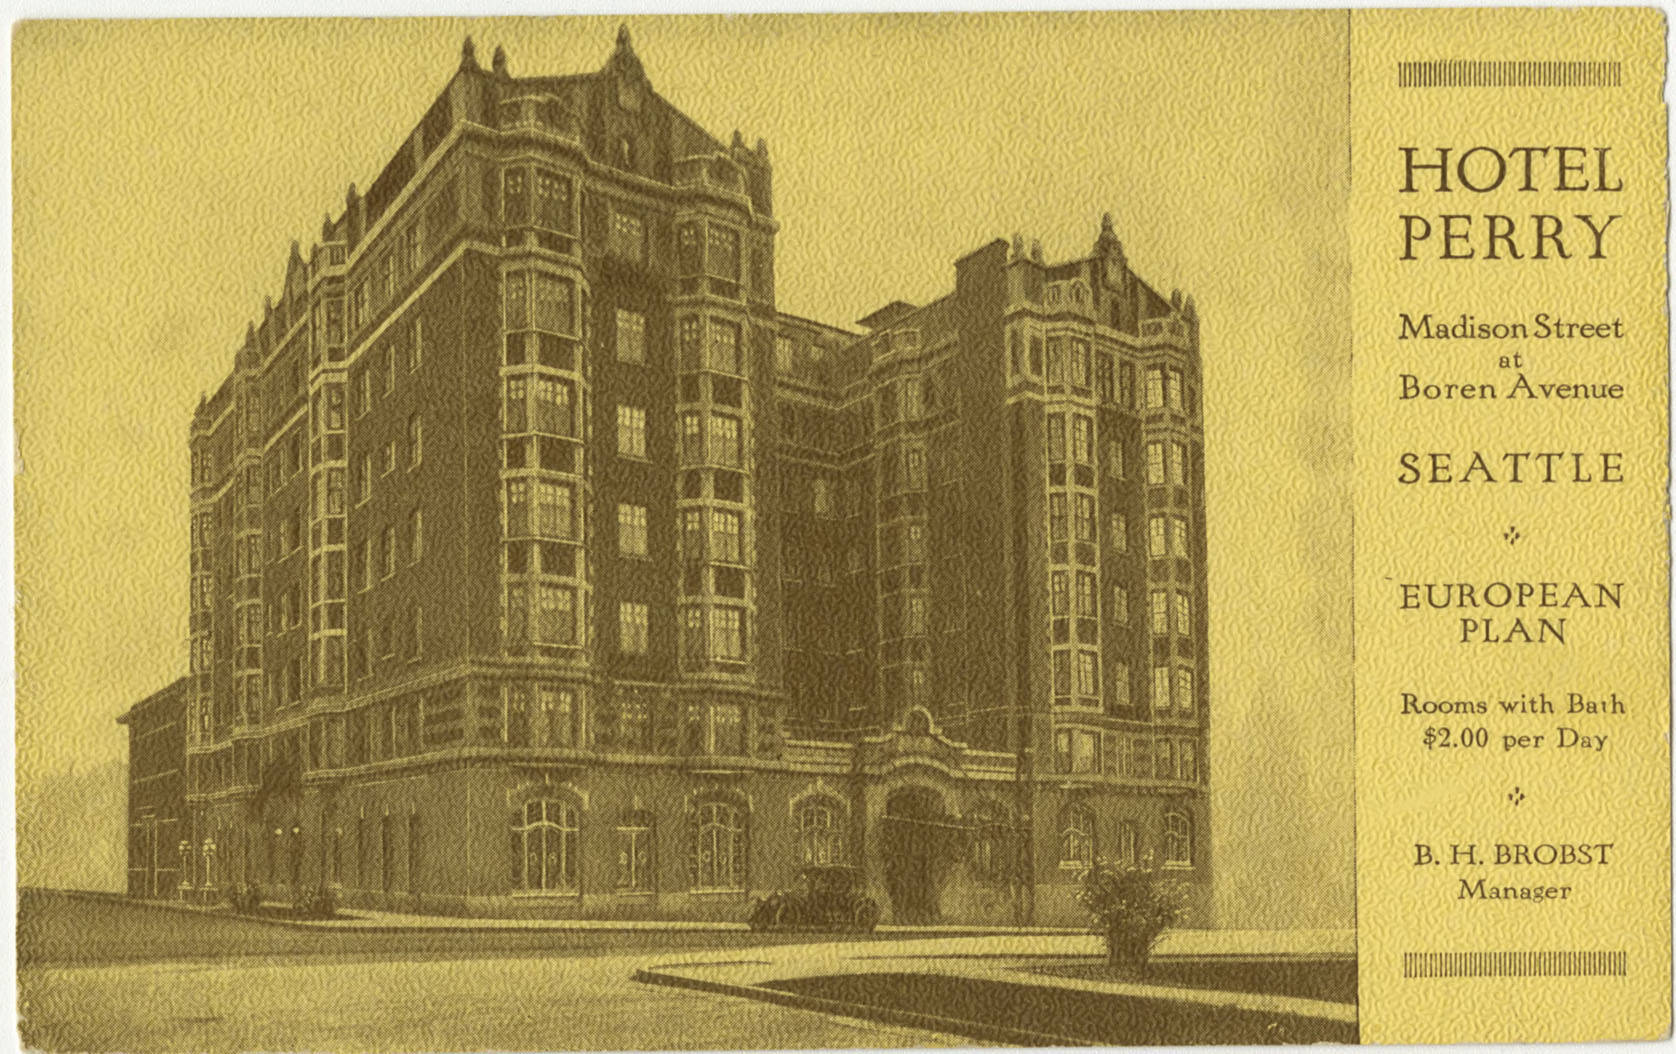 Hotel Perry, 1909